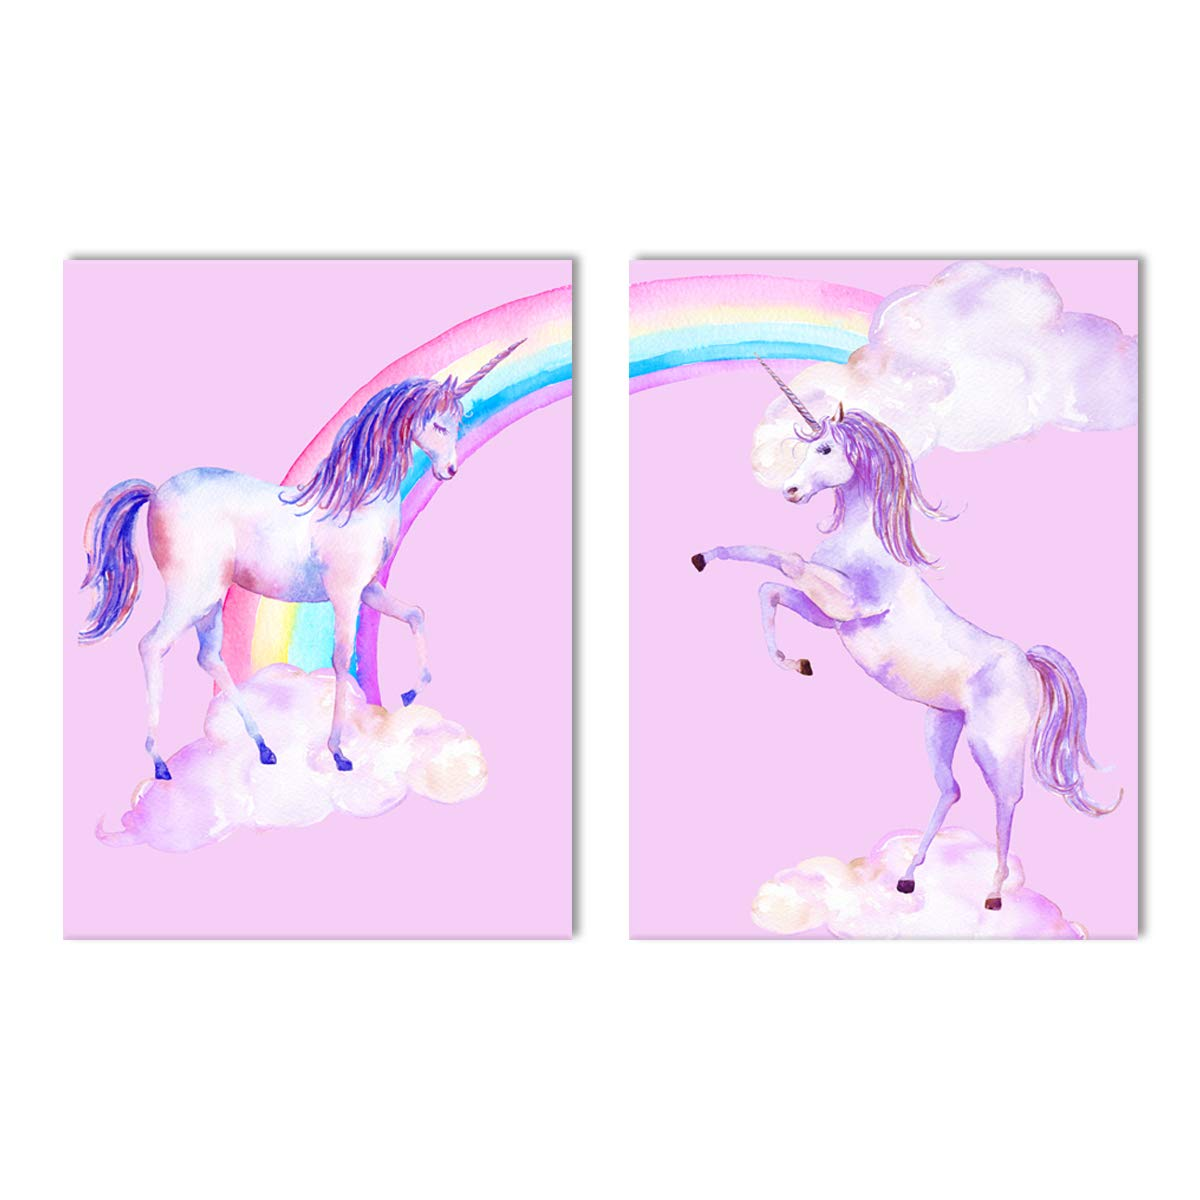 Purple Verbena Art Rainbow Unicorn Pictures for Children Walls D/écor Watercolor Painting Artwork Canvas Print Wall Art for Kids Girls Bedroom Decoration Daughter Gifts,Framed 2 Pcs of 12x16 Inches